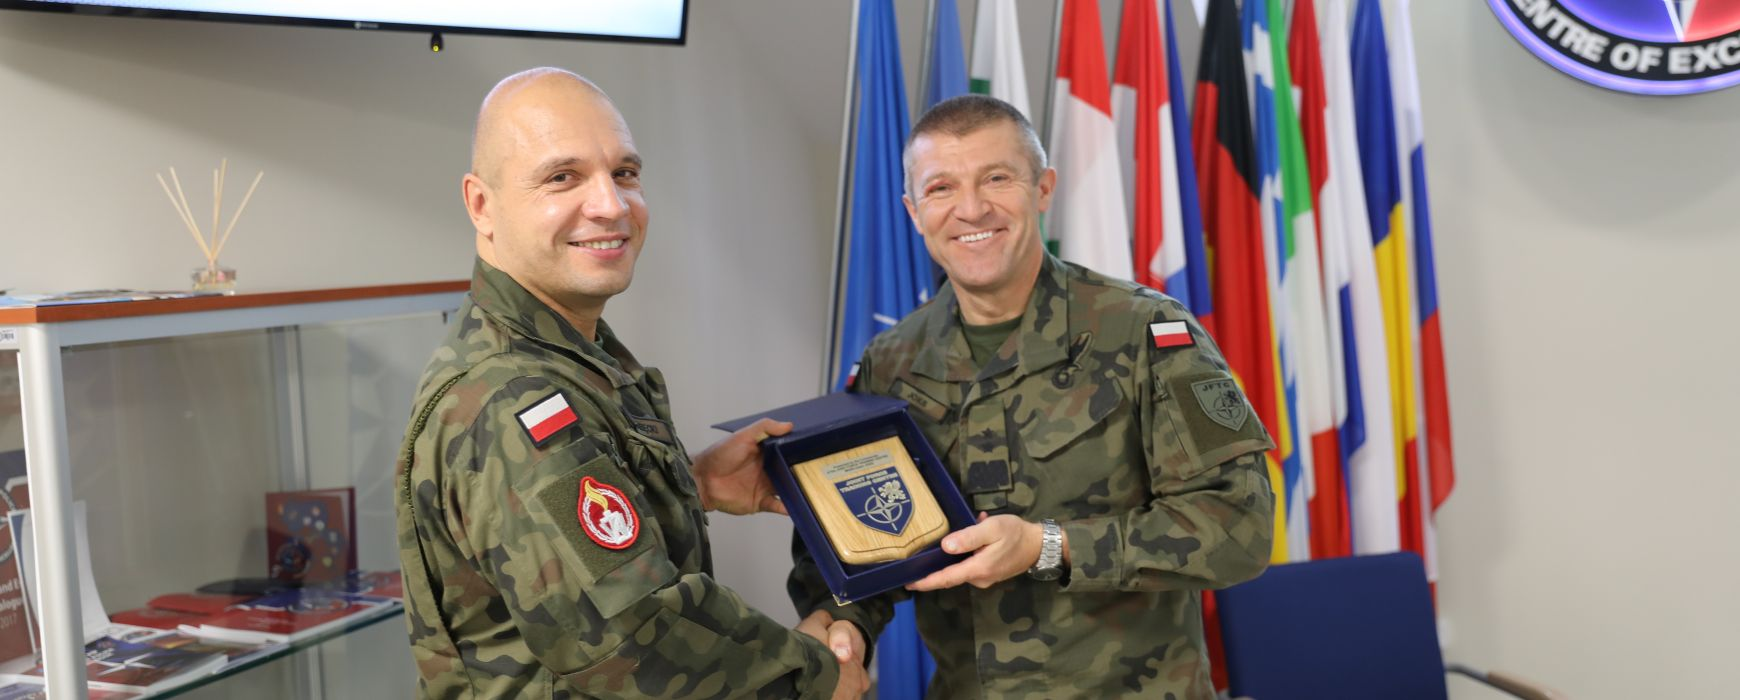 Visit of the Commander of the Joint Force Training Centre (JFTC)